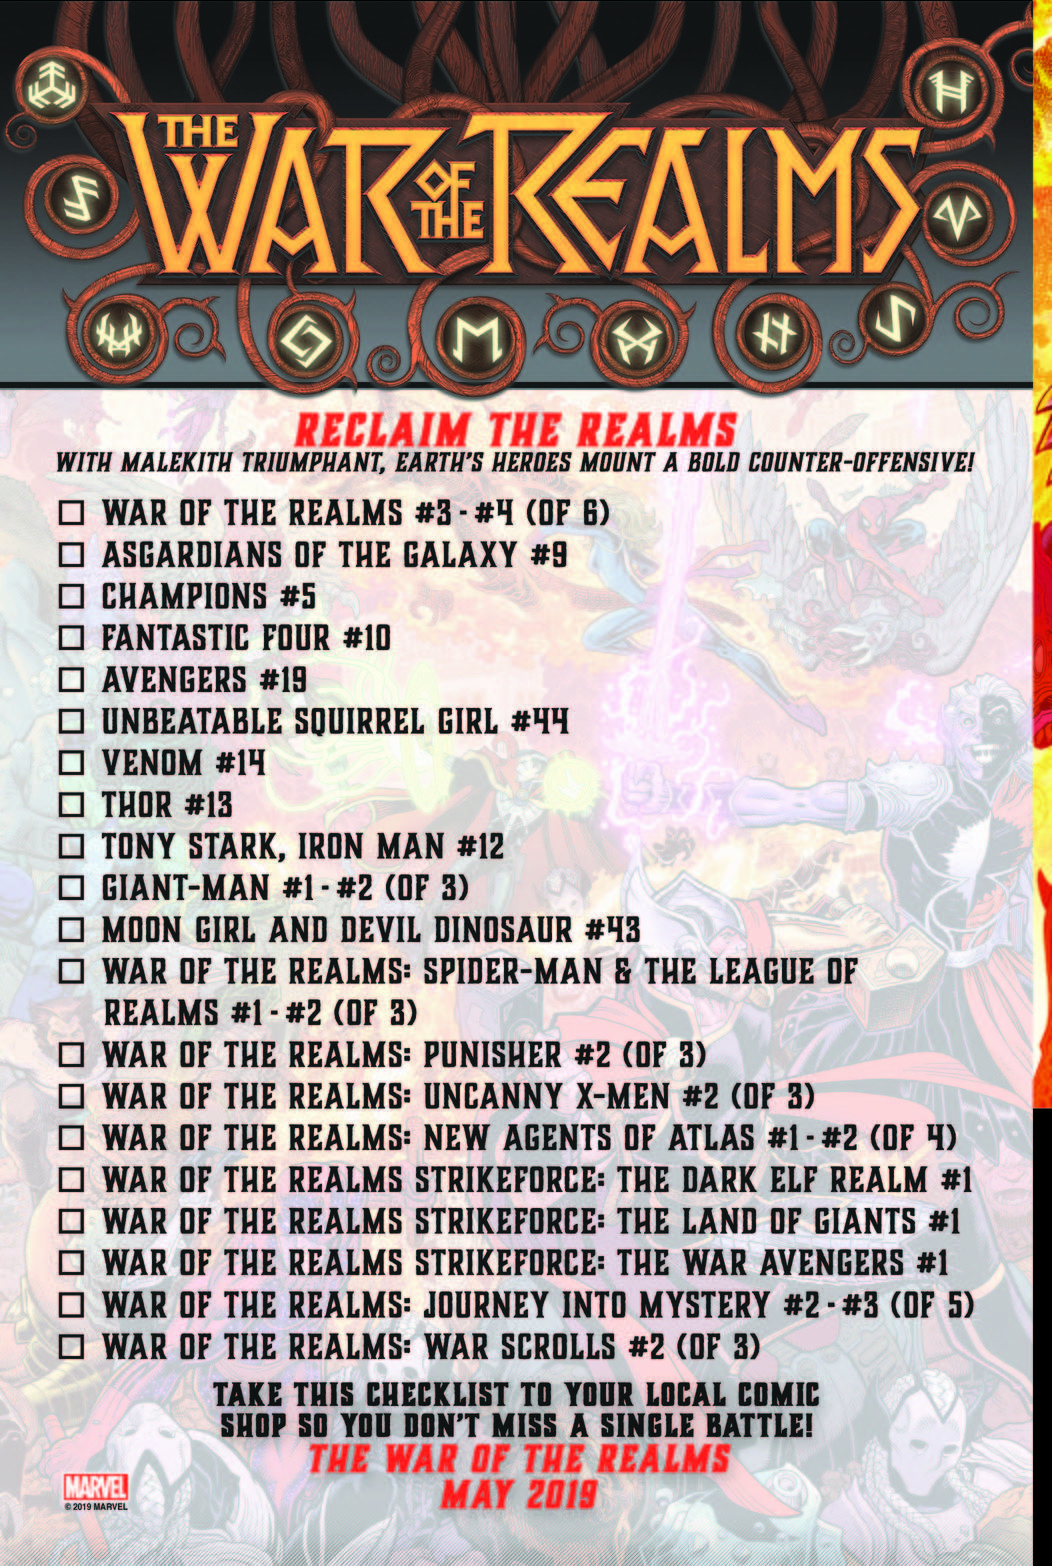 War of the Realms May Checklist